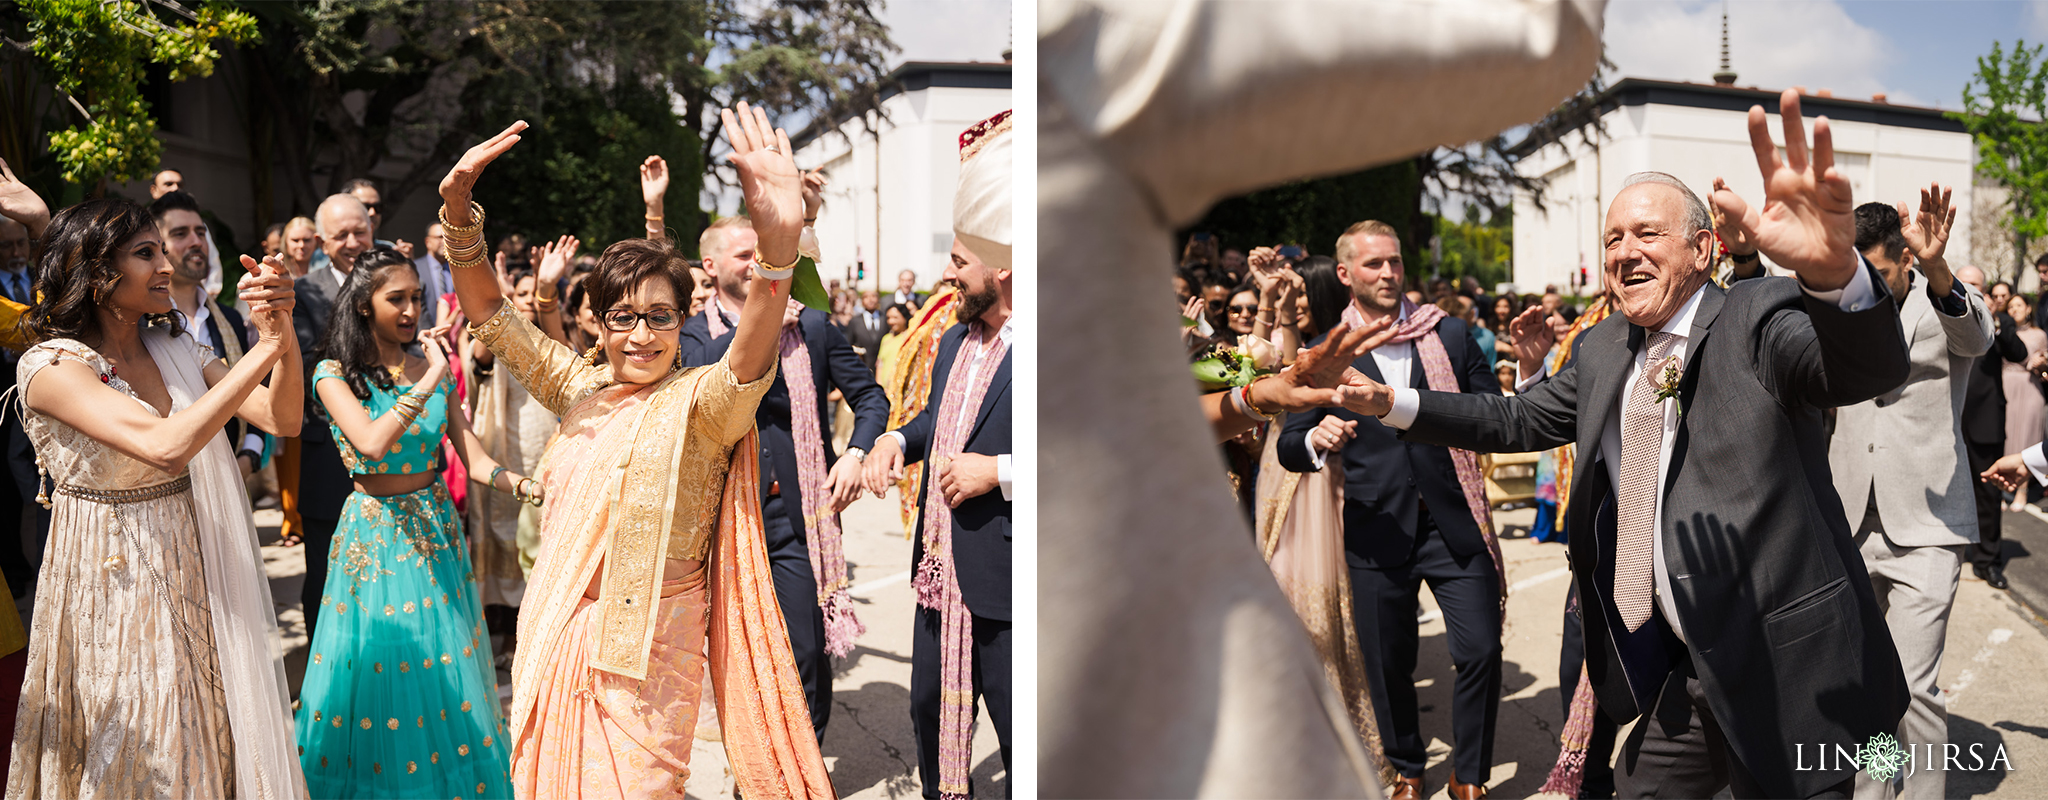 16 The Ebell Los Angeles Indian Wedding Baraat Photography